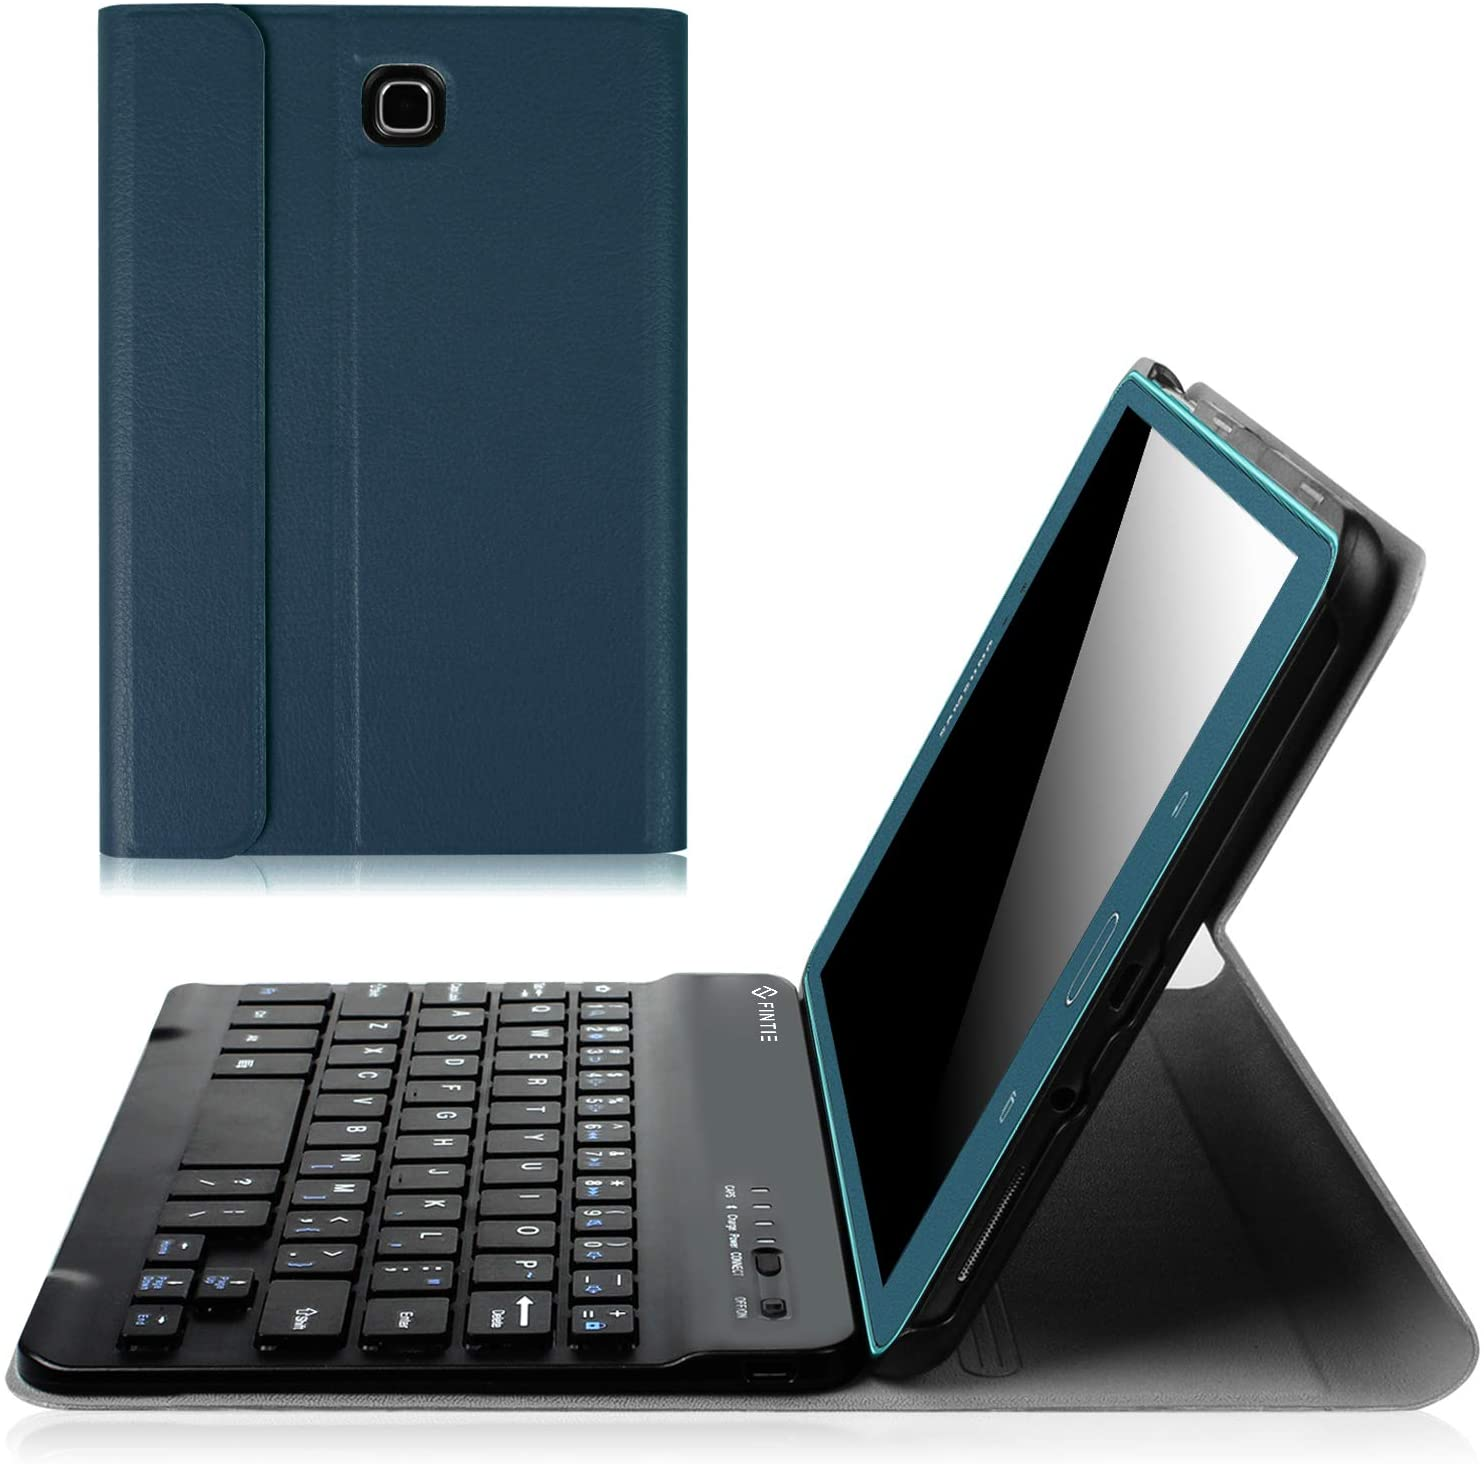 Fintie Keyboard Case for Samsung Galaxy Tab A 8.0 (2015), Slim Shell Stand Cover w/Magnetically Detachable Bluetooth Keyboard for Tab A 8.0 SM-T350/P350 2015 (NOT Fit 2017/2018 Version), Navy